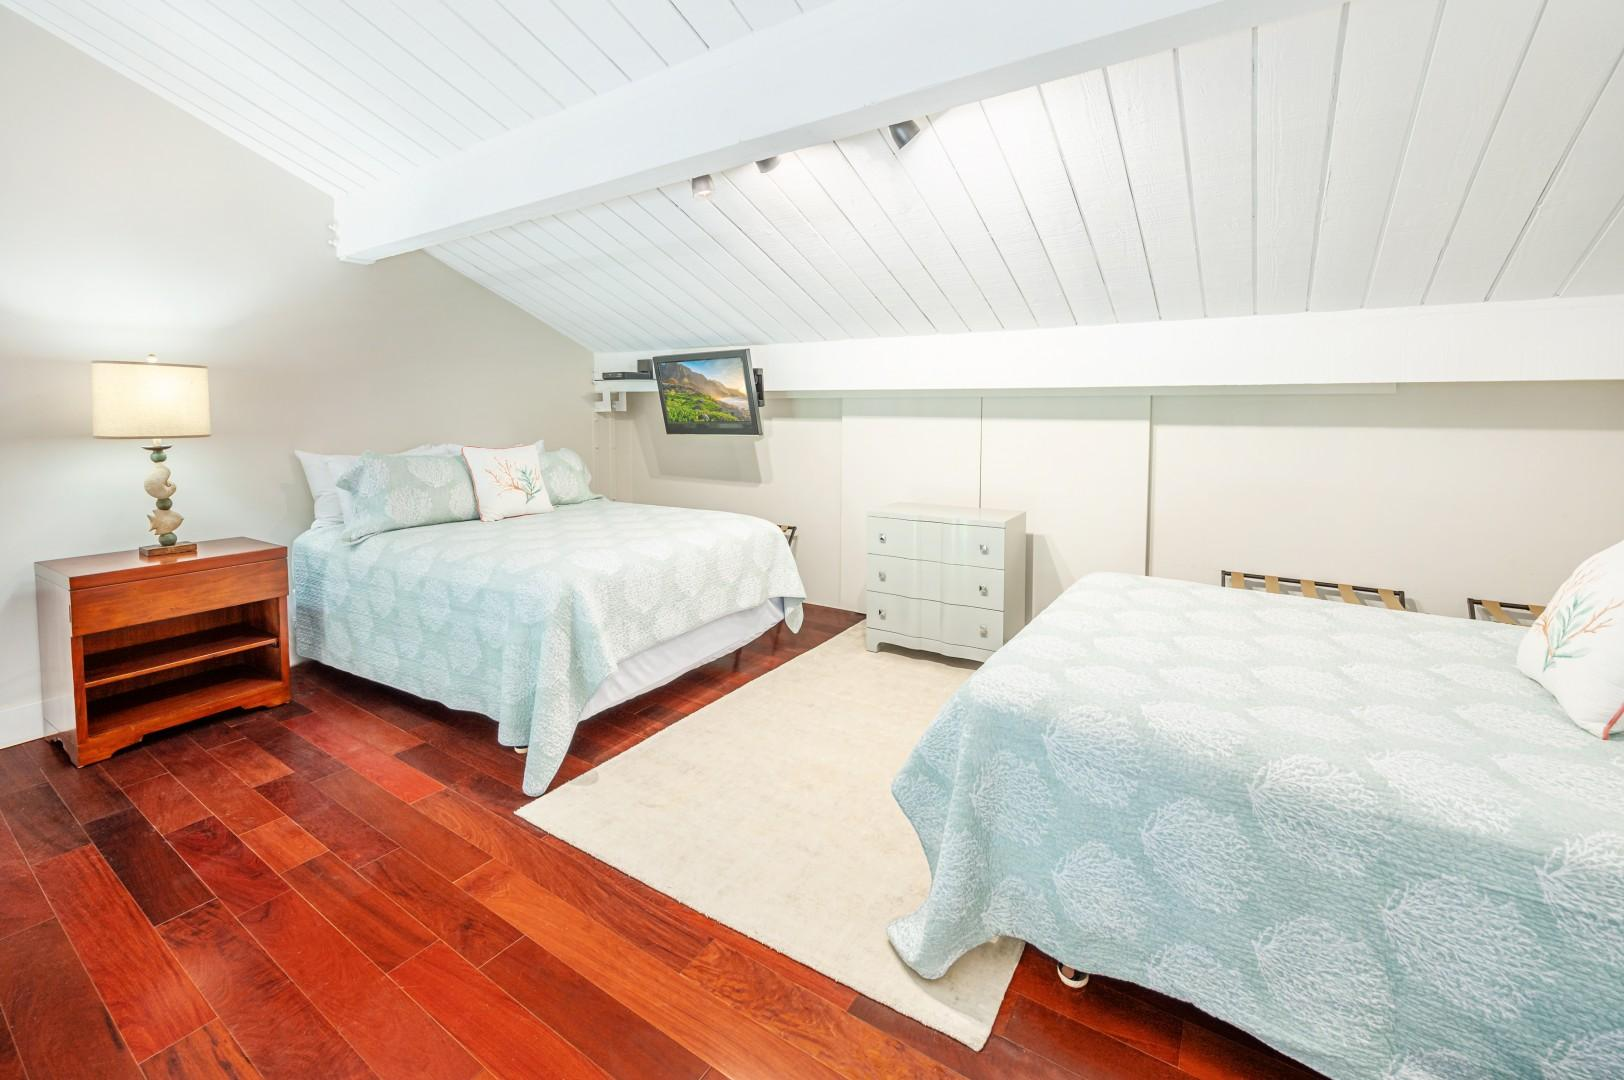 Two queen beds in the loft area